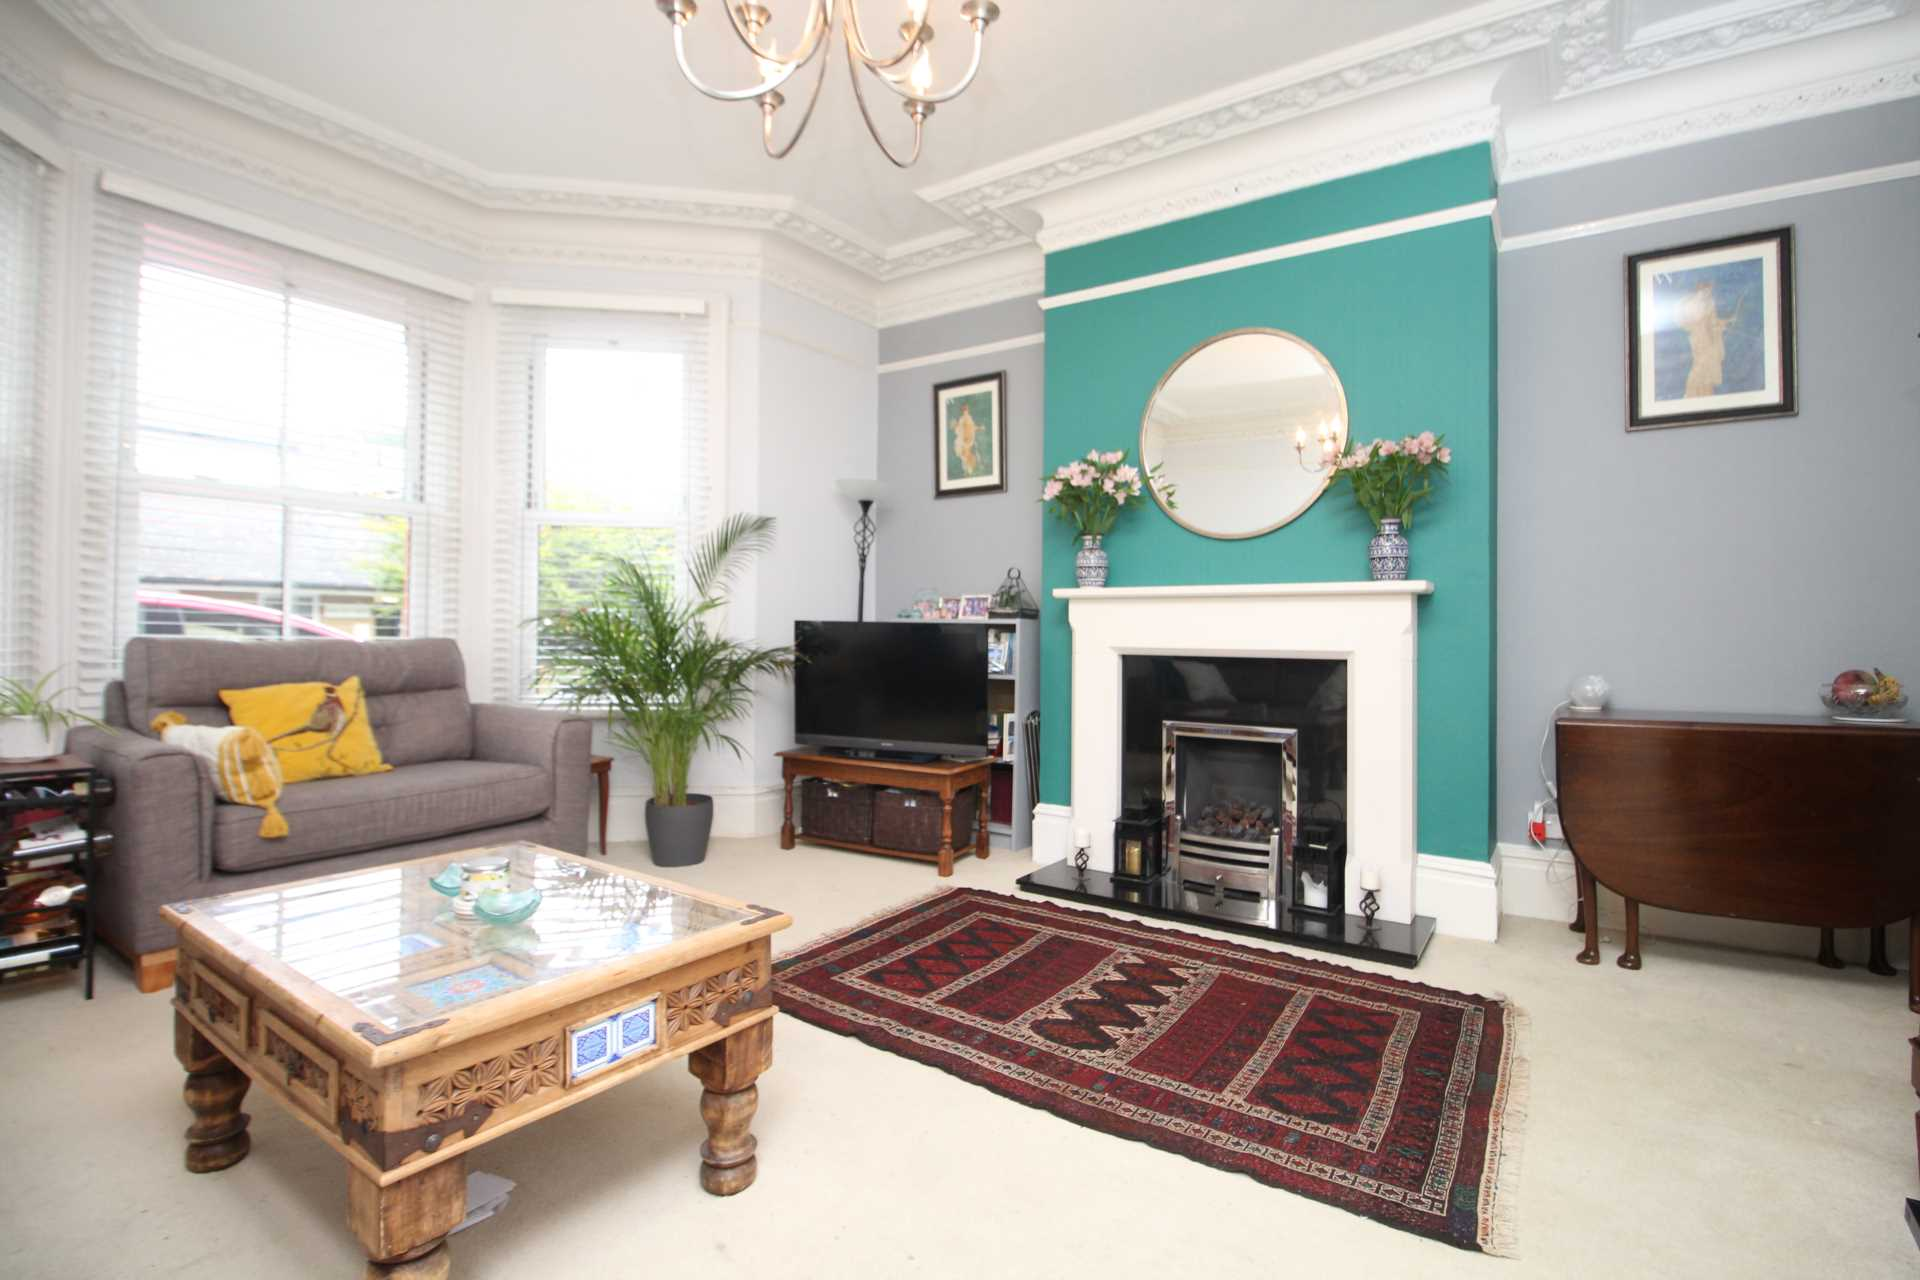 Warley Mount, Brentwood, Image 4